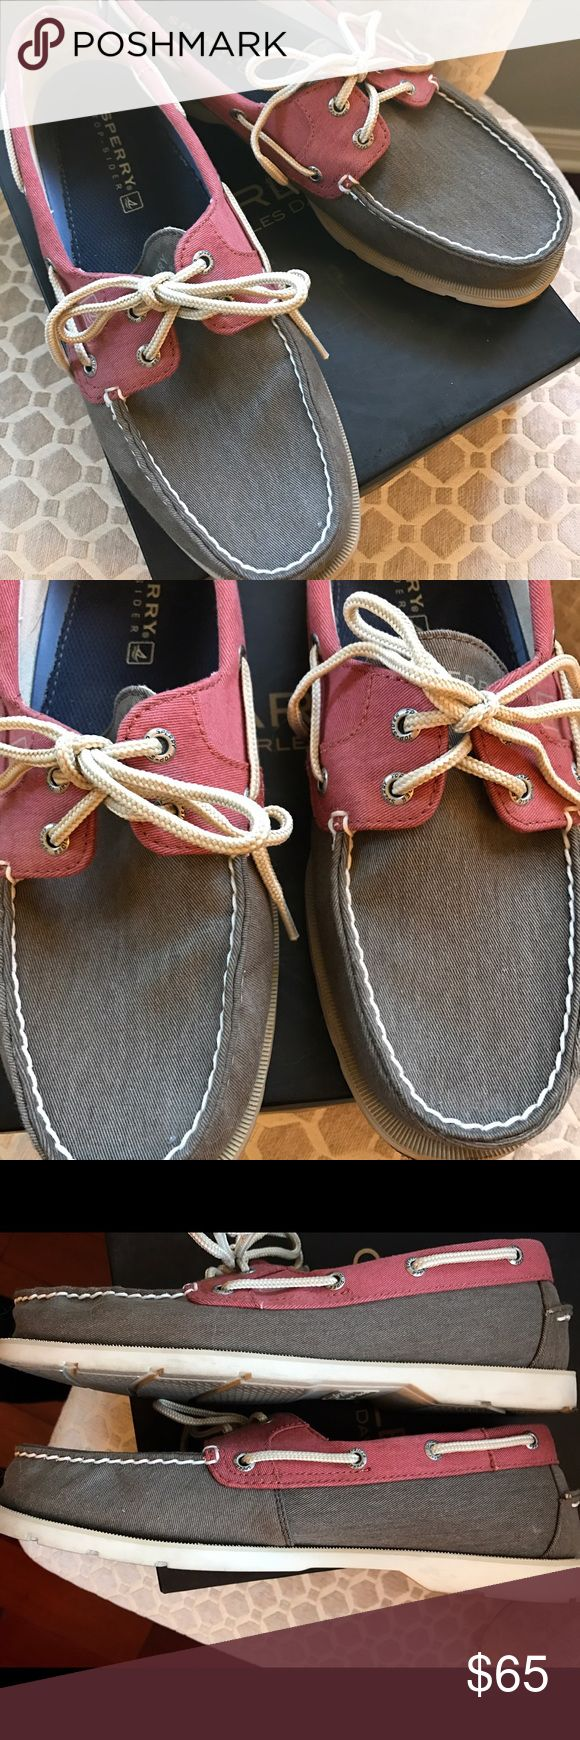 Sperry Top Sider Men's Boat Shoes Excellent used Men's boat shoes. Only used a few times. Color is a red and grayish/army green color. No stains, tears or visible flaws. Soles are still in great condition. Purchased from Nordstroms. Sperry Top-Sider Shoes Boat Shoes